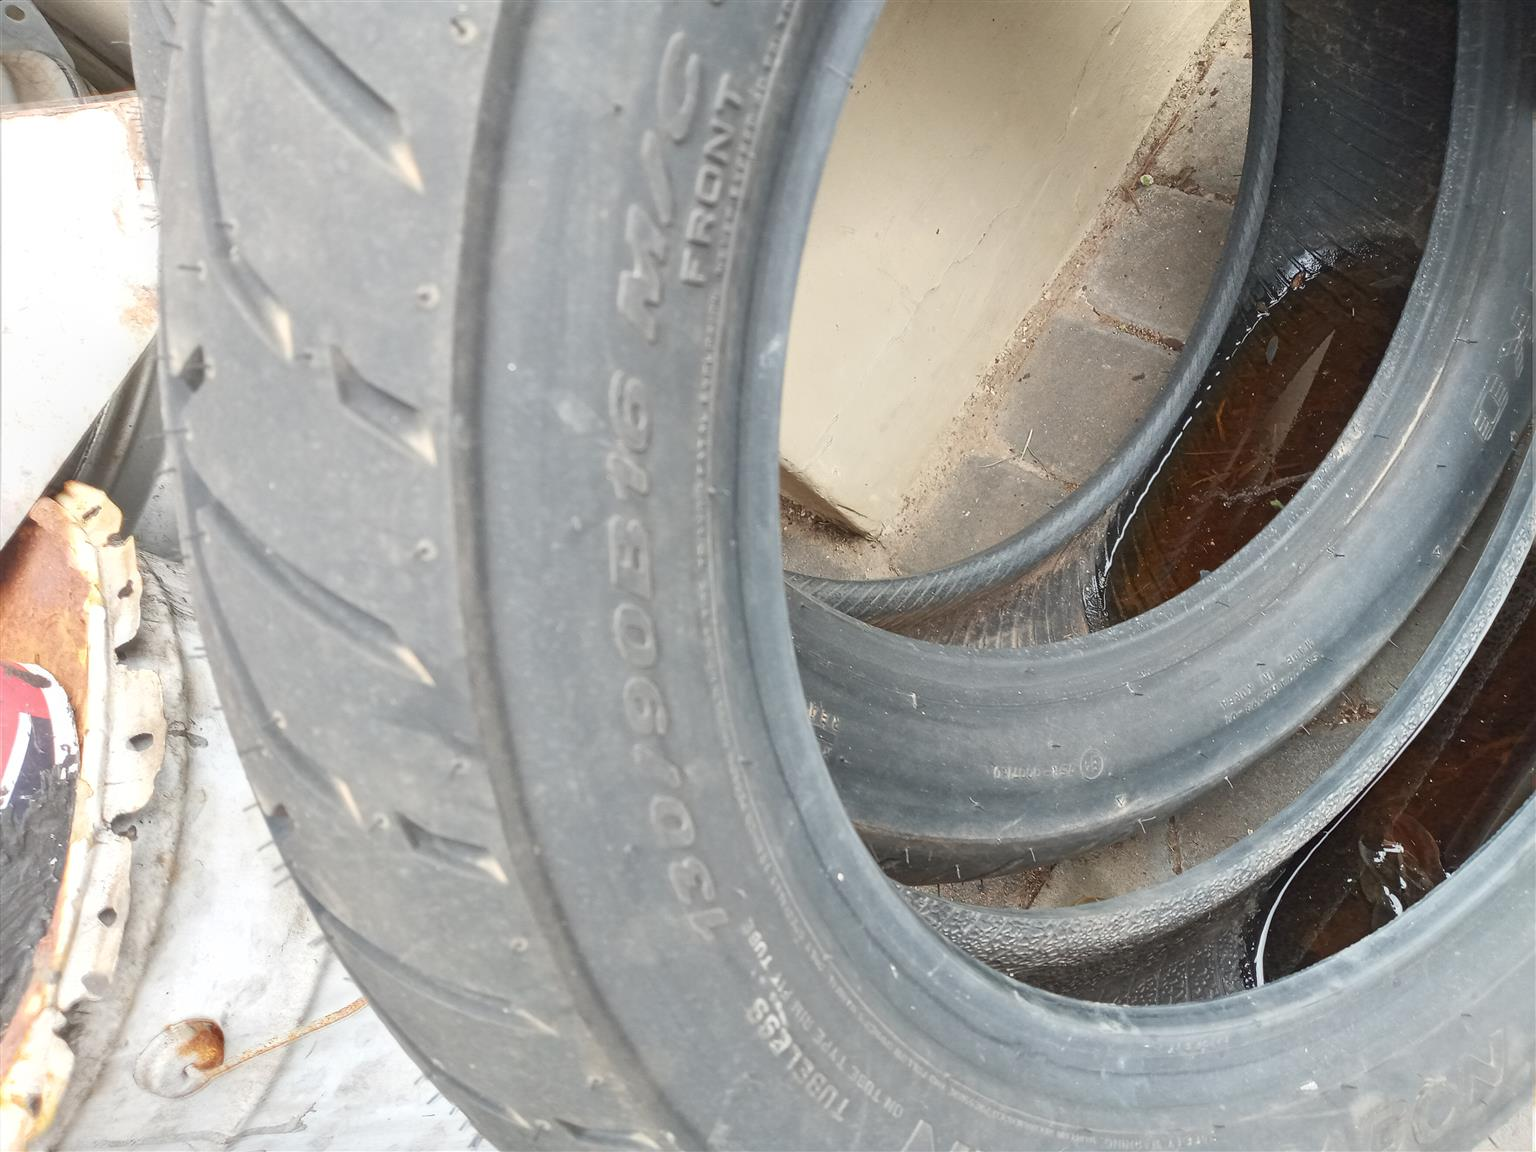 brand new tyres for scooter and cuser